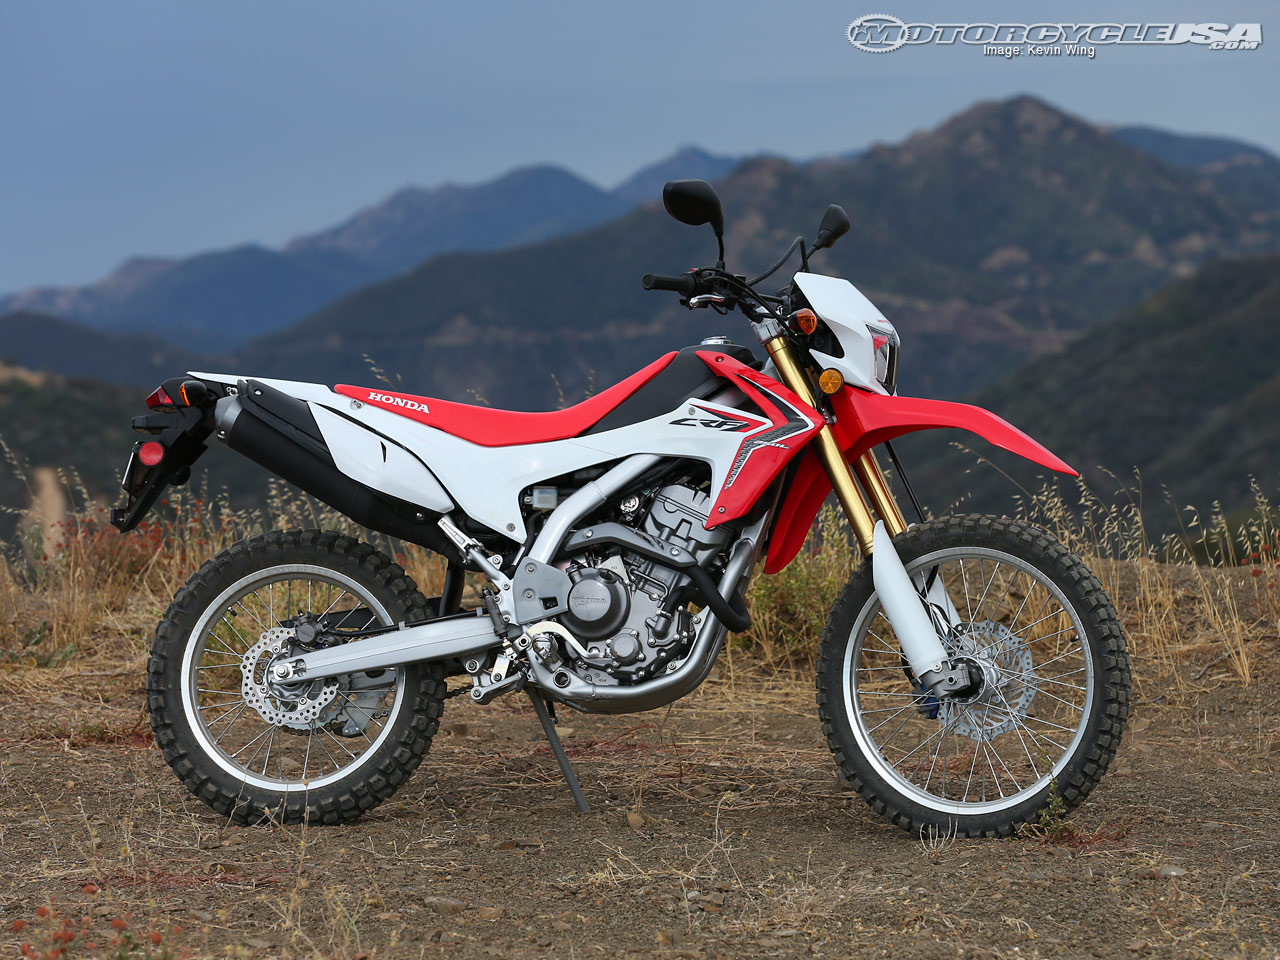 2013 honda crf 250 l pics specs and information. Black Bedroom Furniture Sets. Home Design Ideas